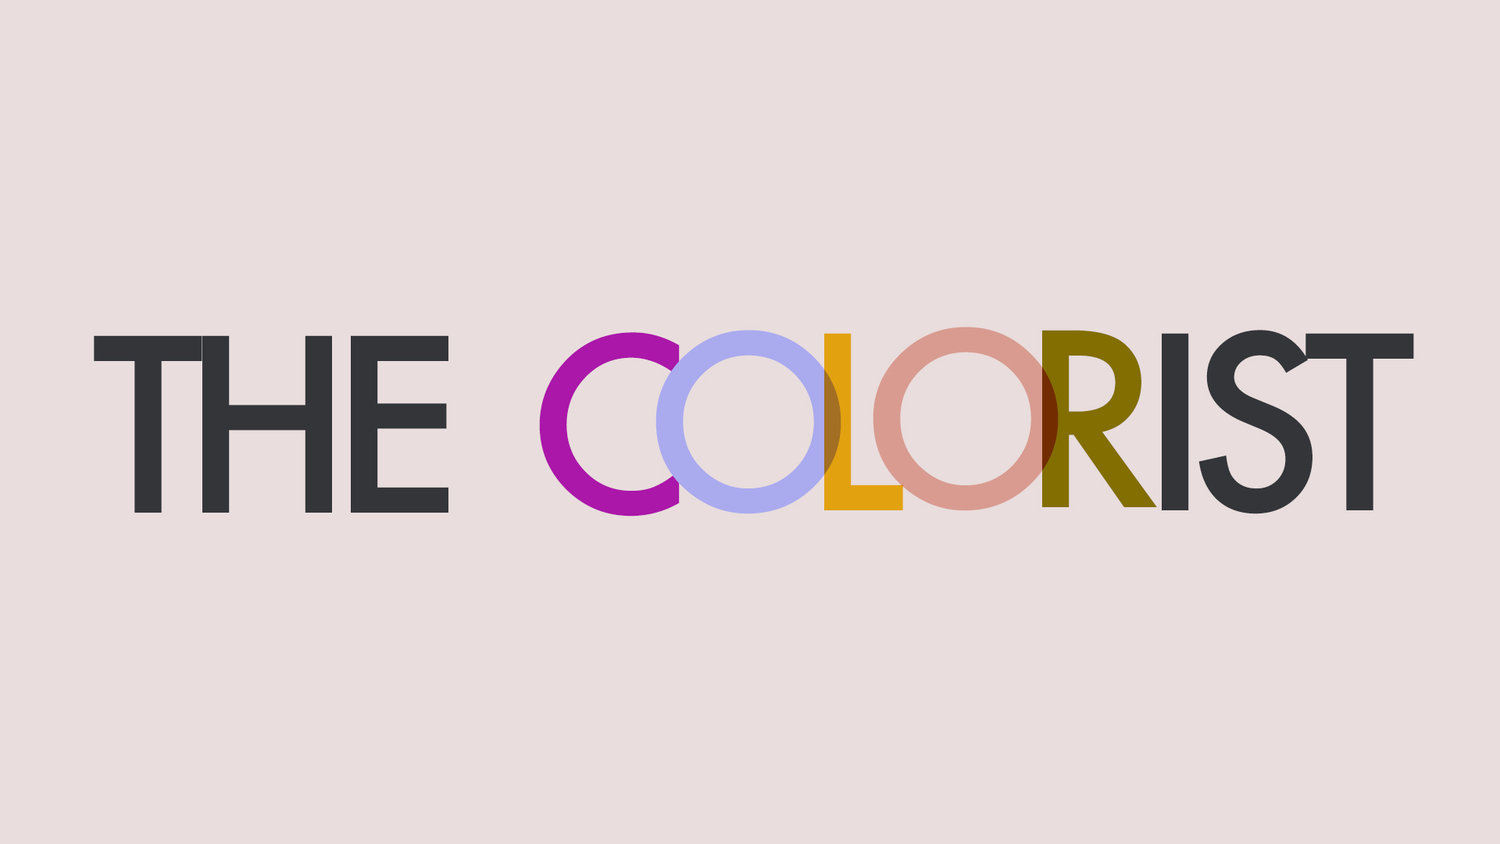 THE COLORIST: Color Inspiration for Artists and Designers